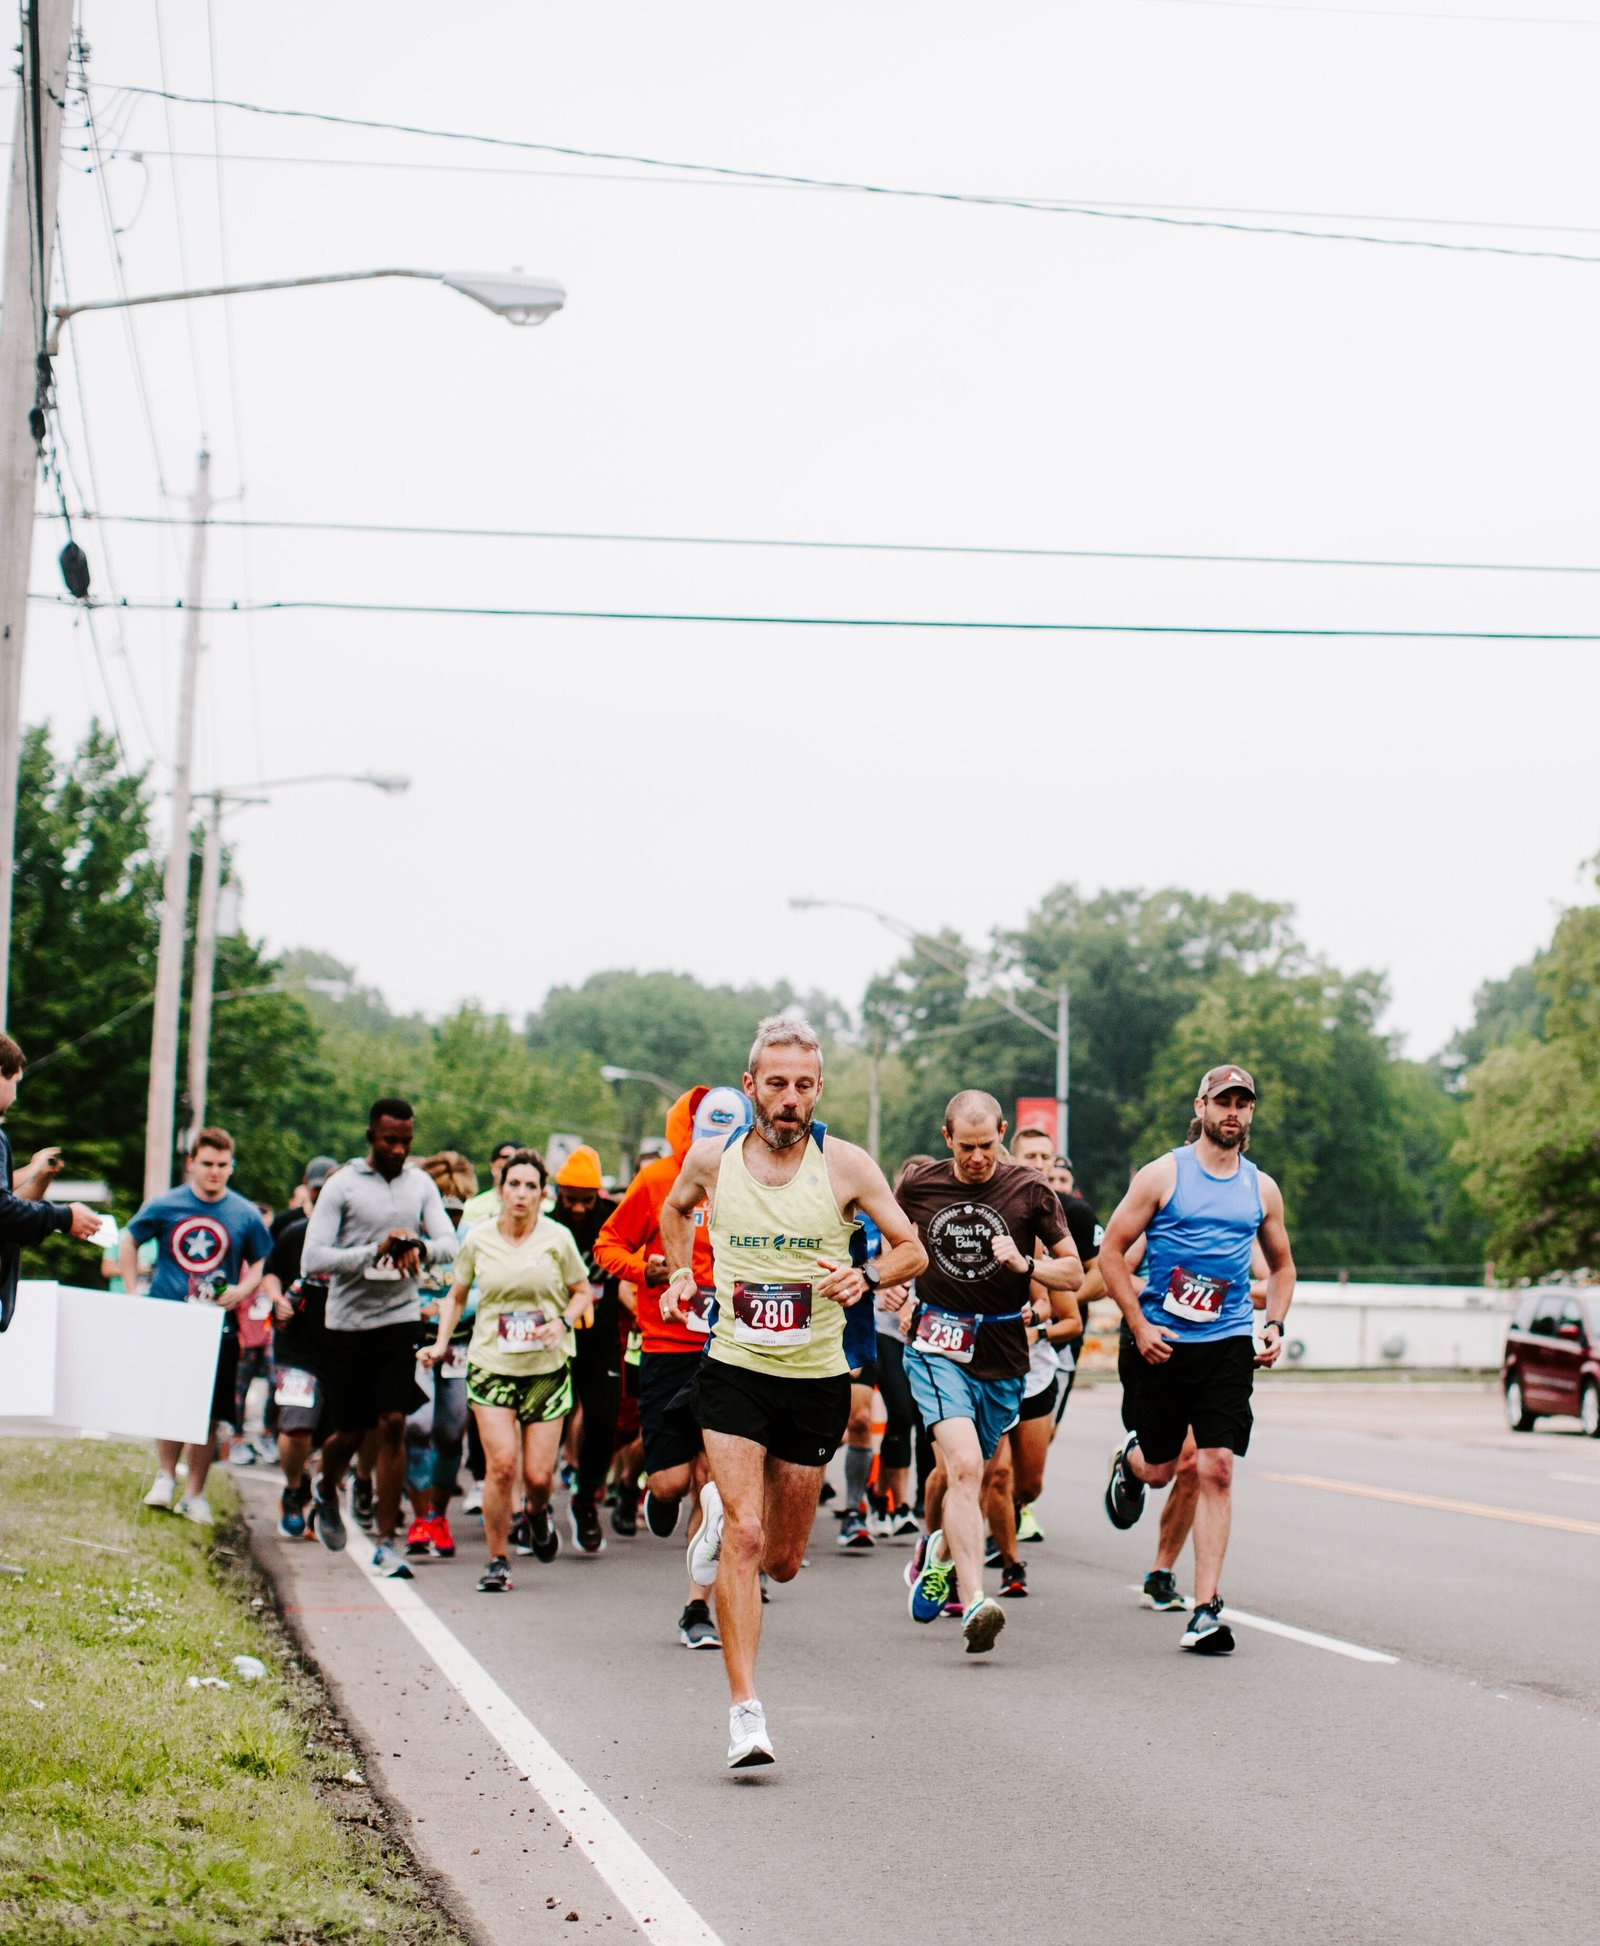 2019 West Tennessee Strawberry Festival - 5k Race - 51